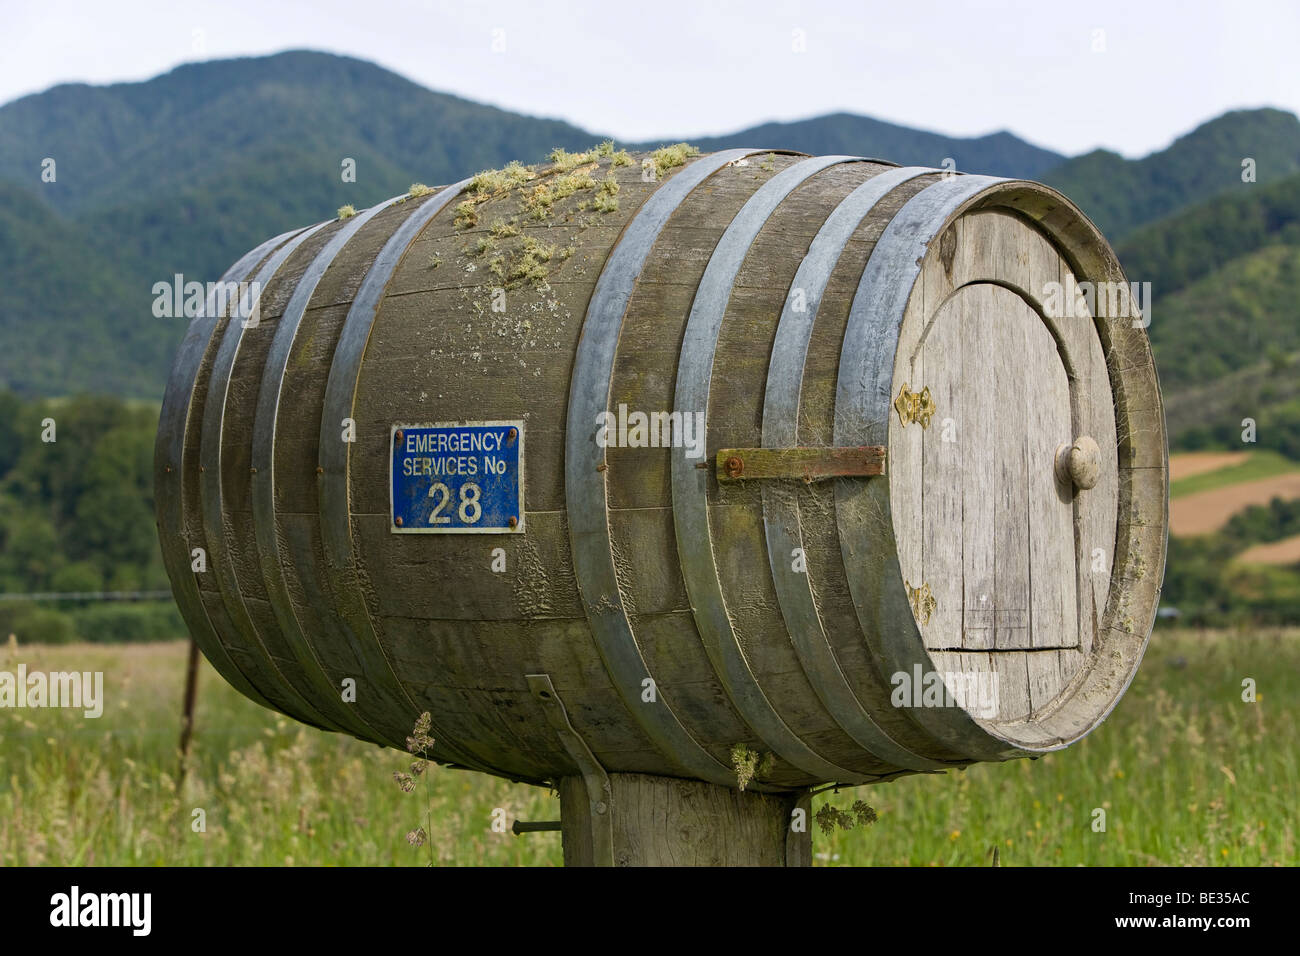 Wooden wine barrel converted into a post box, Mangles Valley, South Island, New Zealand Stock Photo